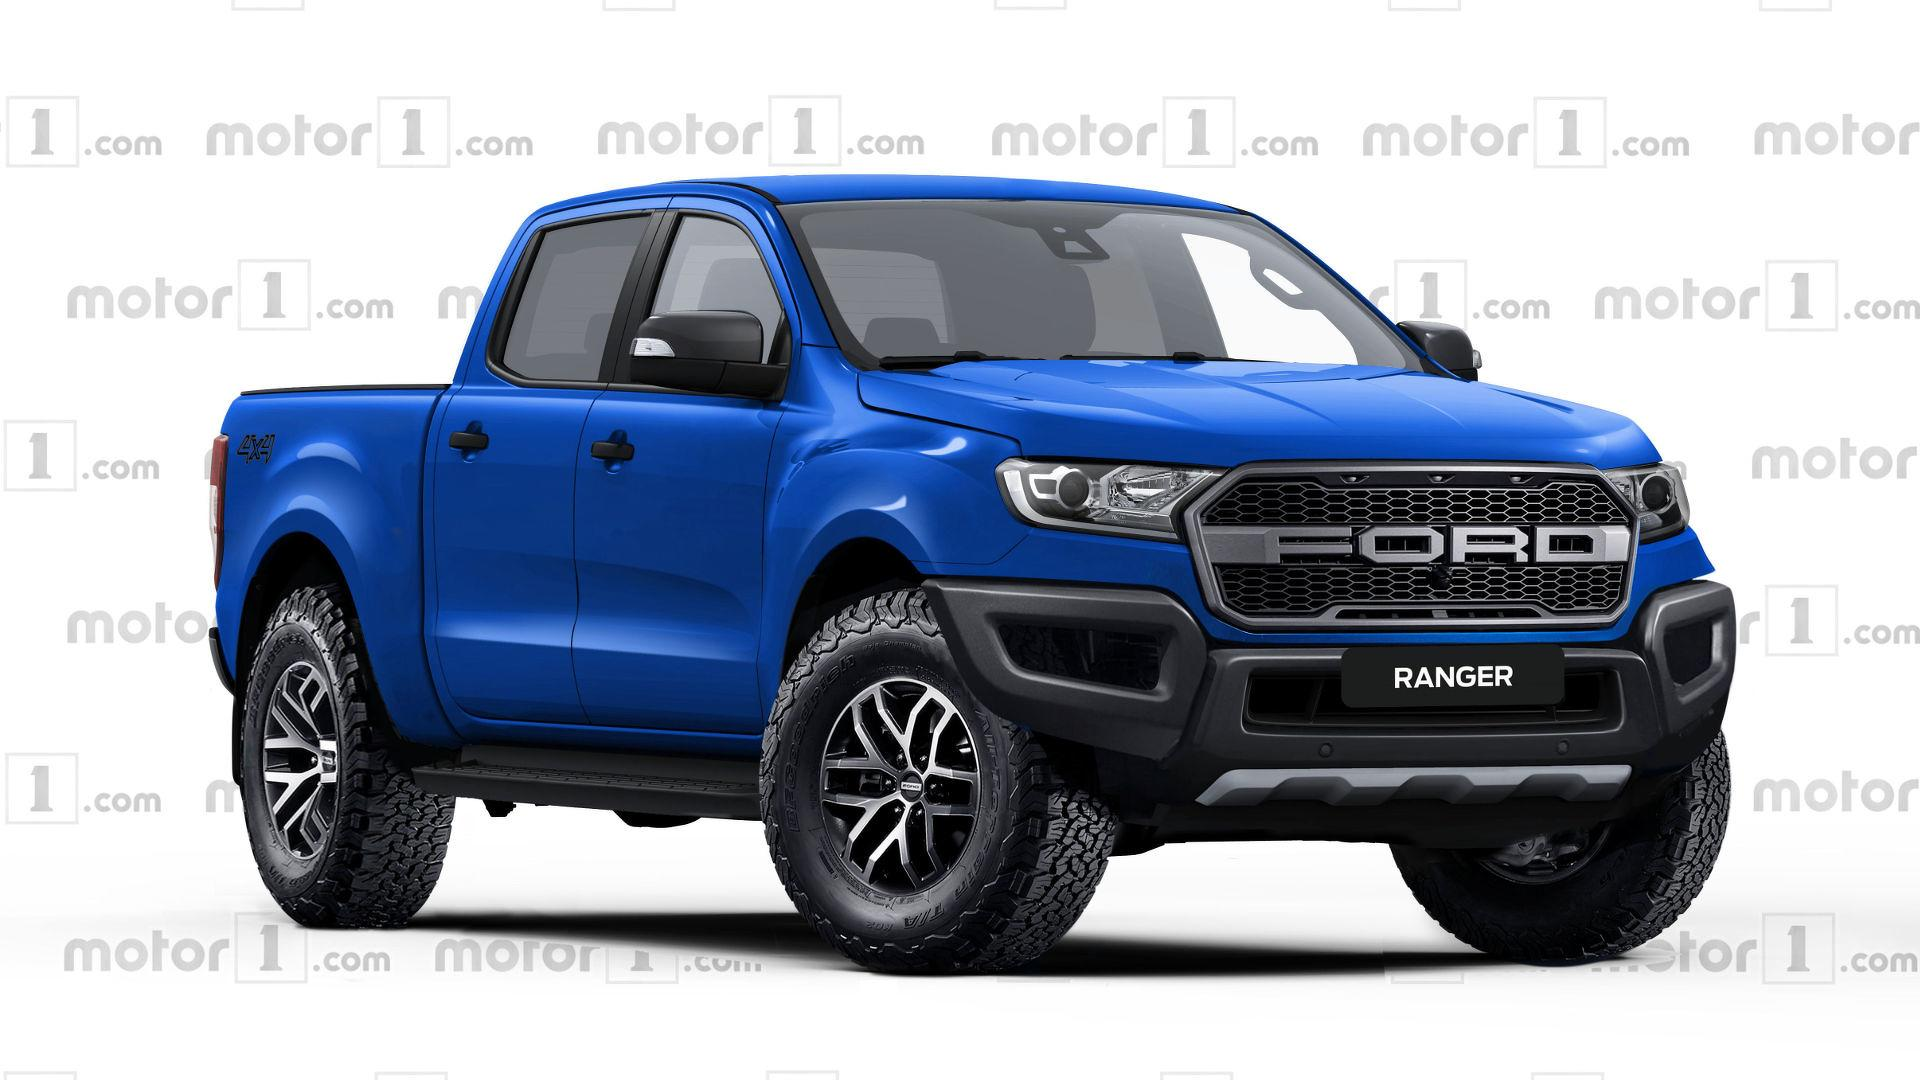 Ford ranger raptor rendered ready to rival colorado zr2